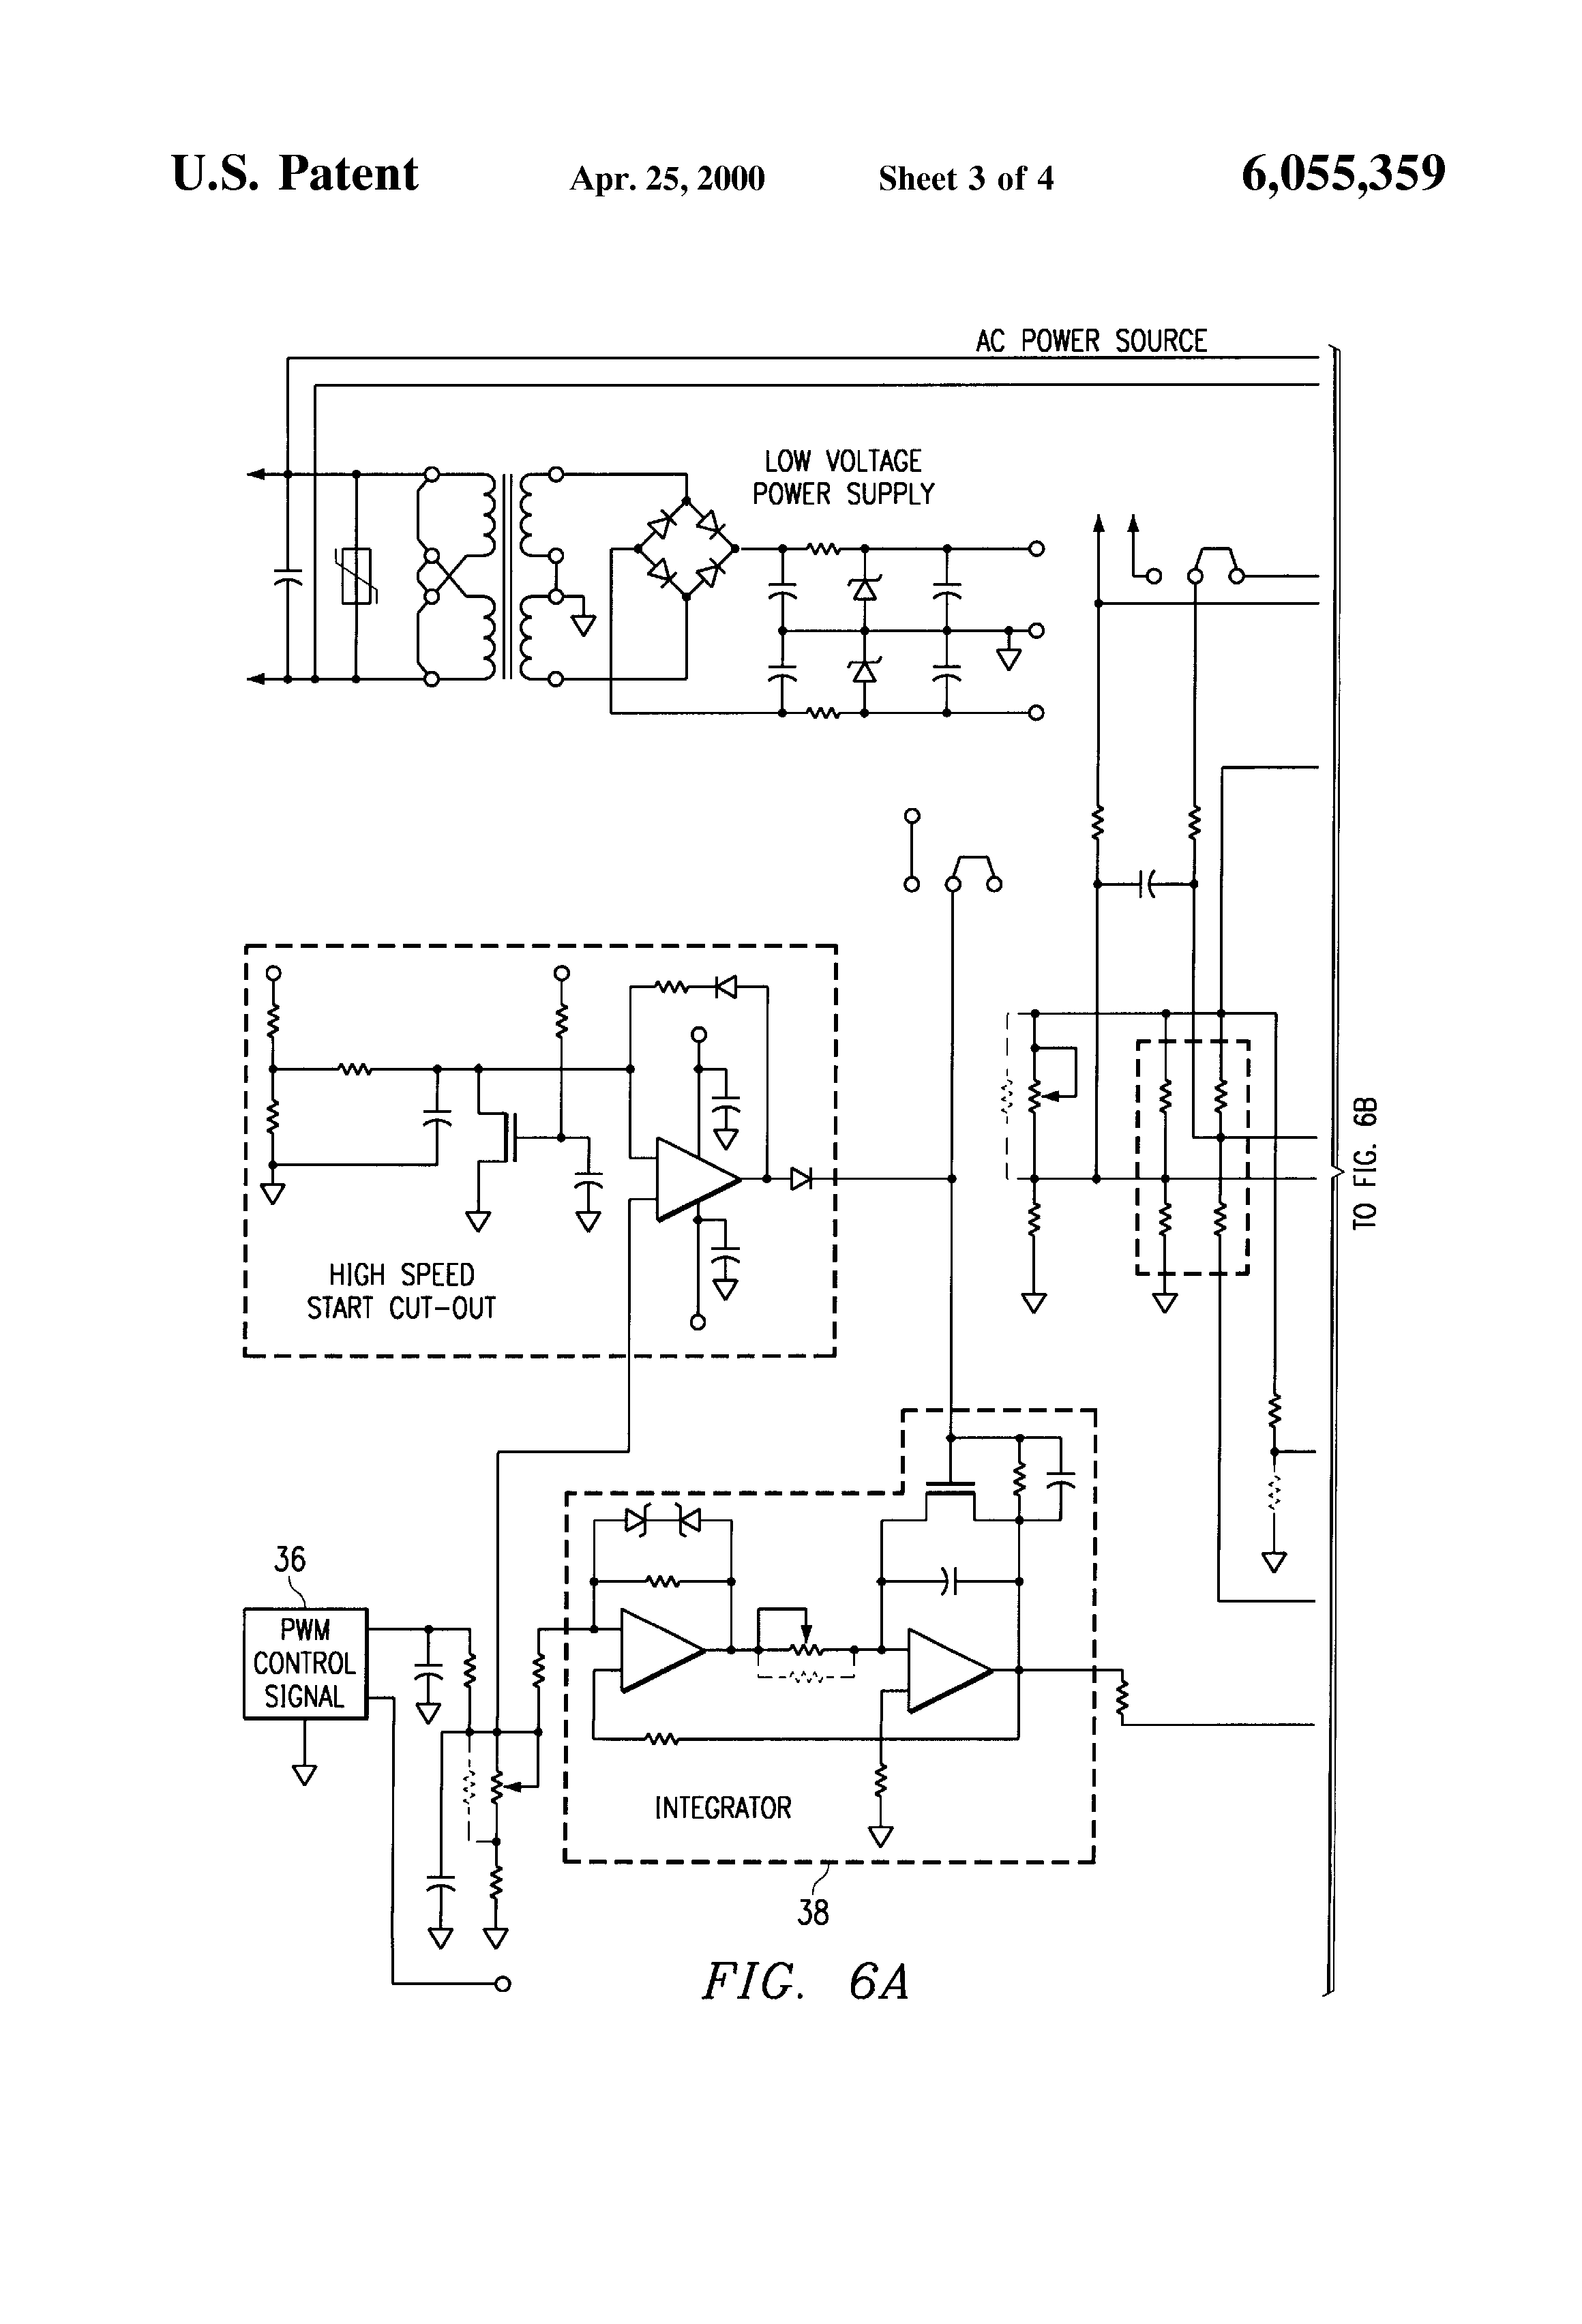 Patent Us6055359 Dc Motor Drive Control With Improved